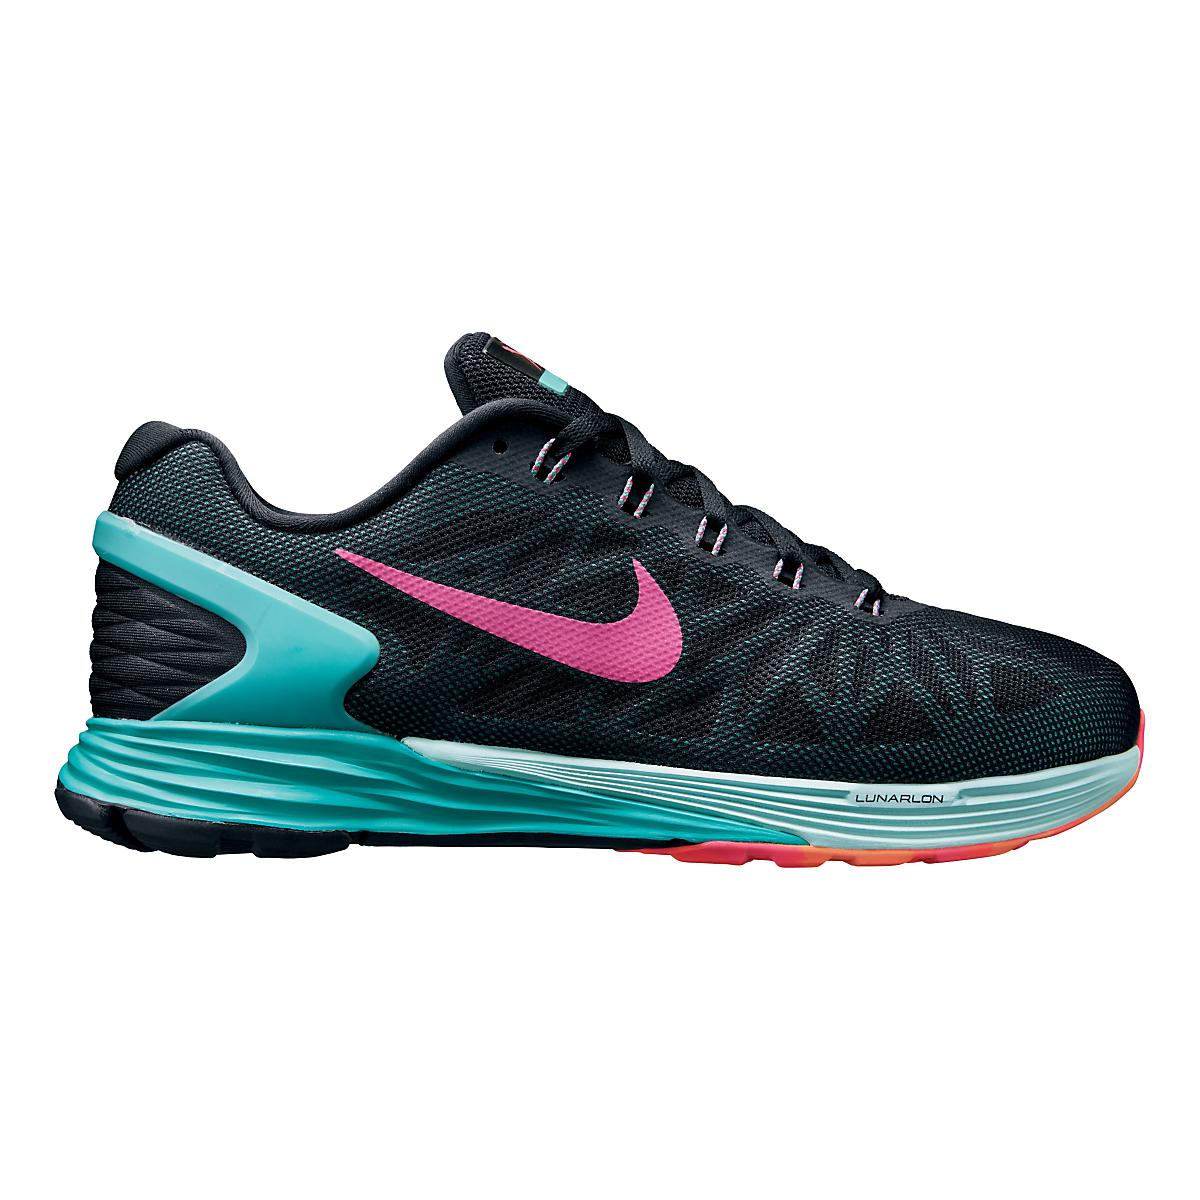 8755d8f26147 Womens Nike LunarGlide 6 Running Shoe at Road Runner Sports